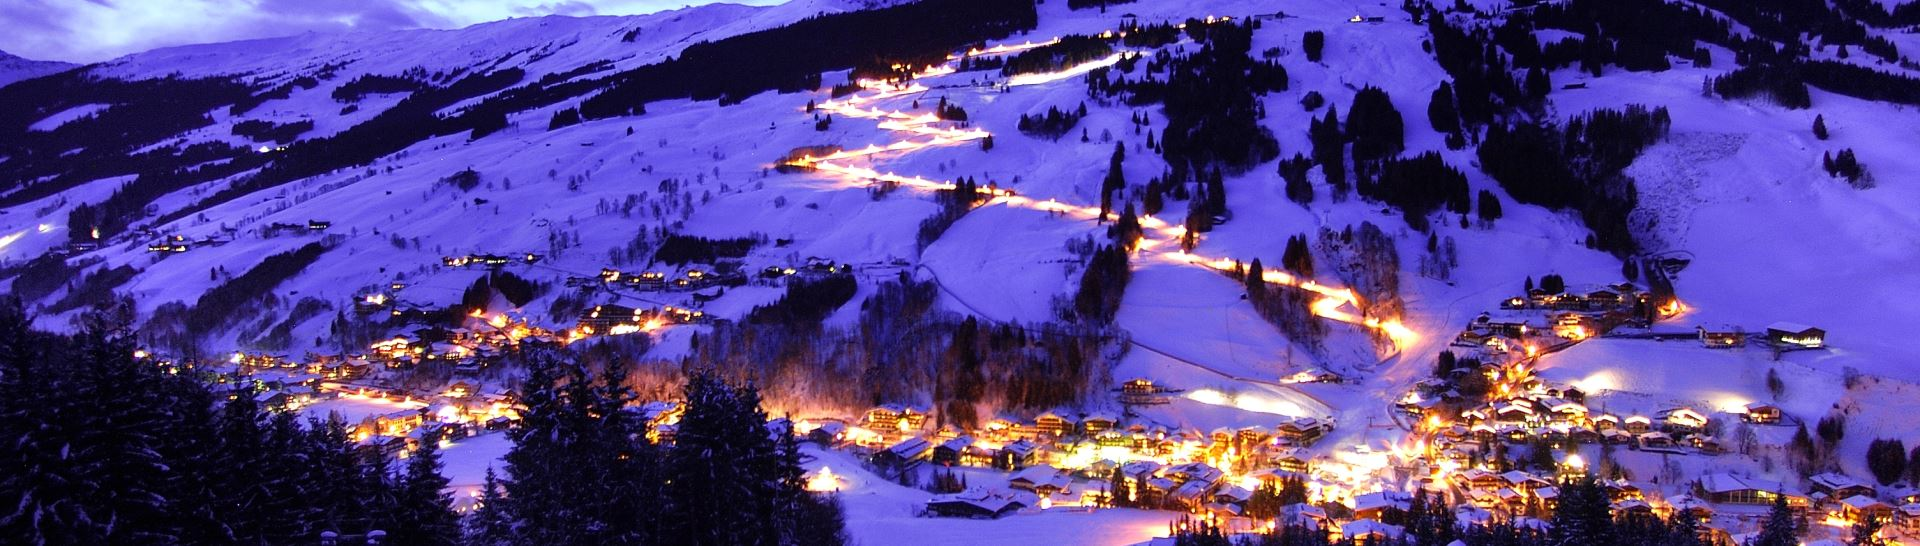 Winter holidays in Saalbach Hinterglemm - Hotel Tristkogel